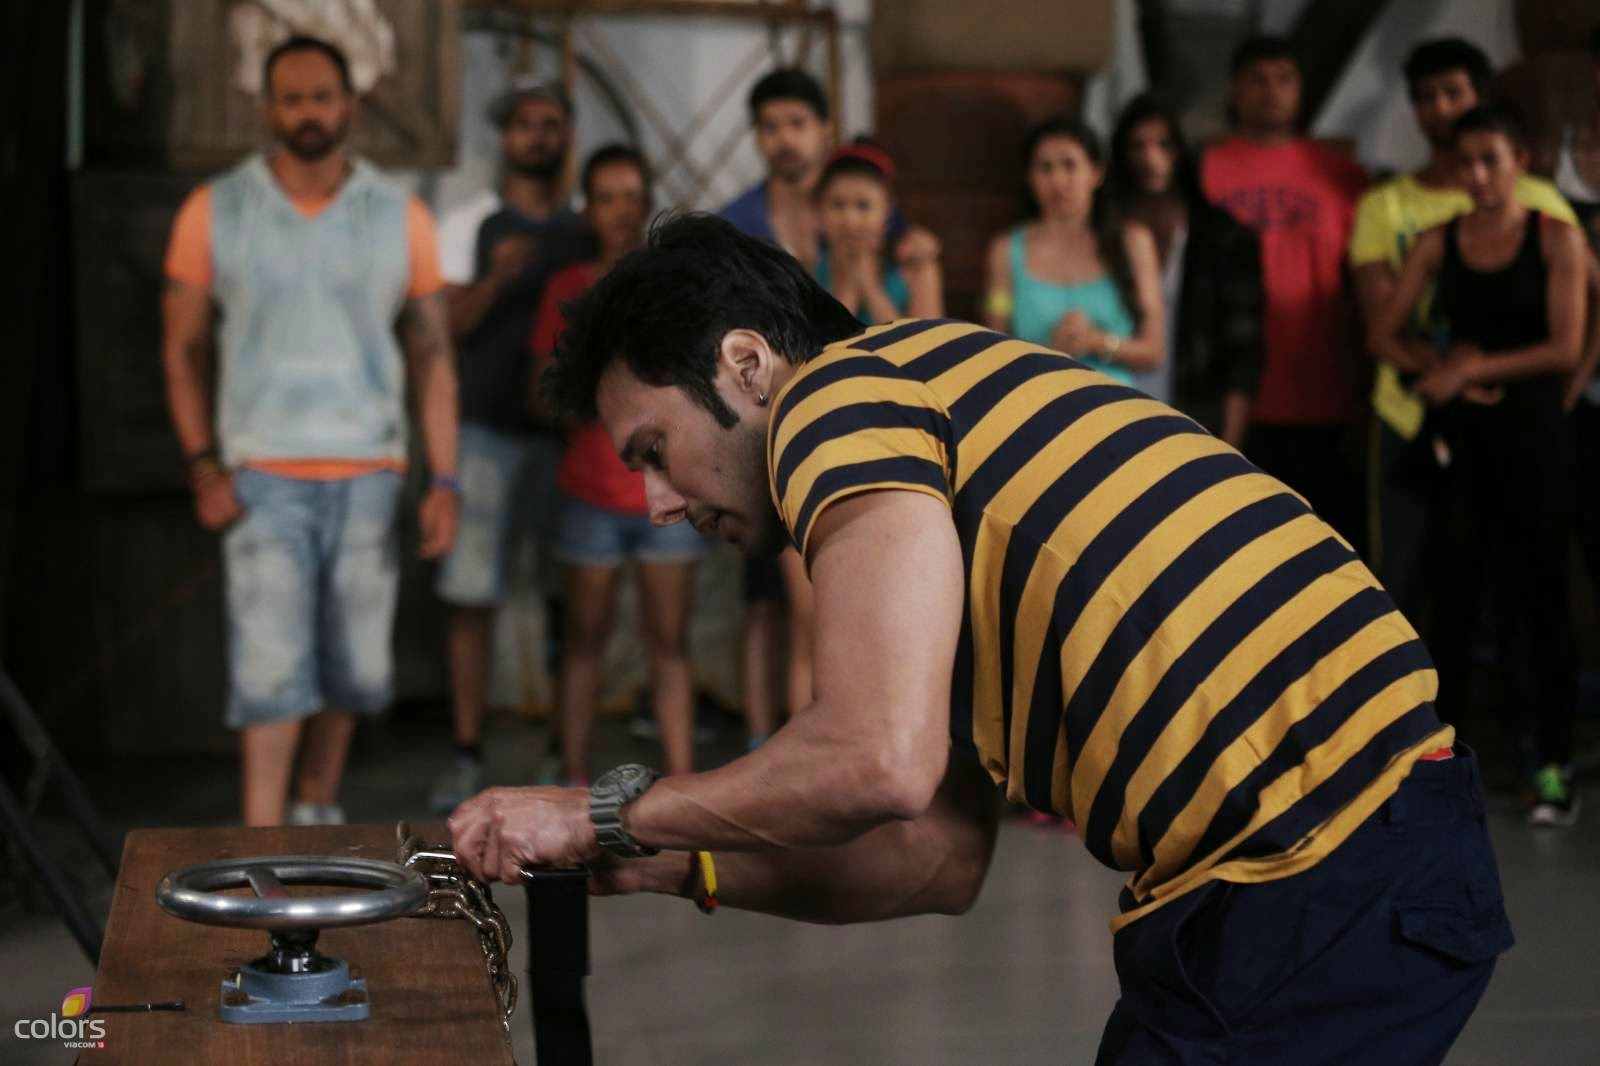 Rajneesh in Fear Factor Khatron Ke khiladi stunt that had a coffin with cockroaches, crickets and spiders